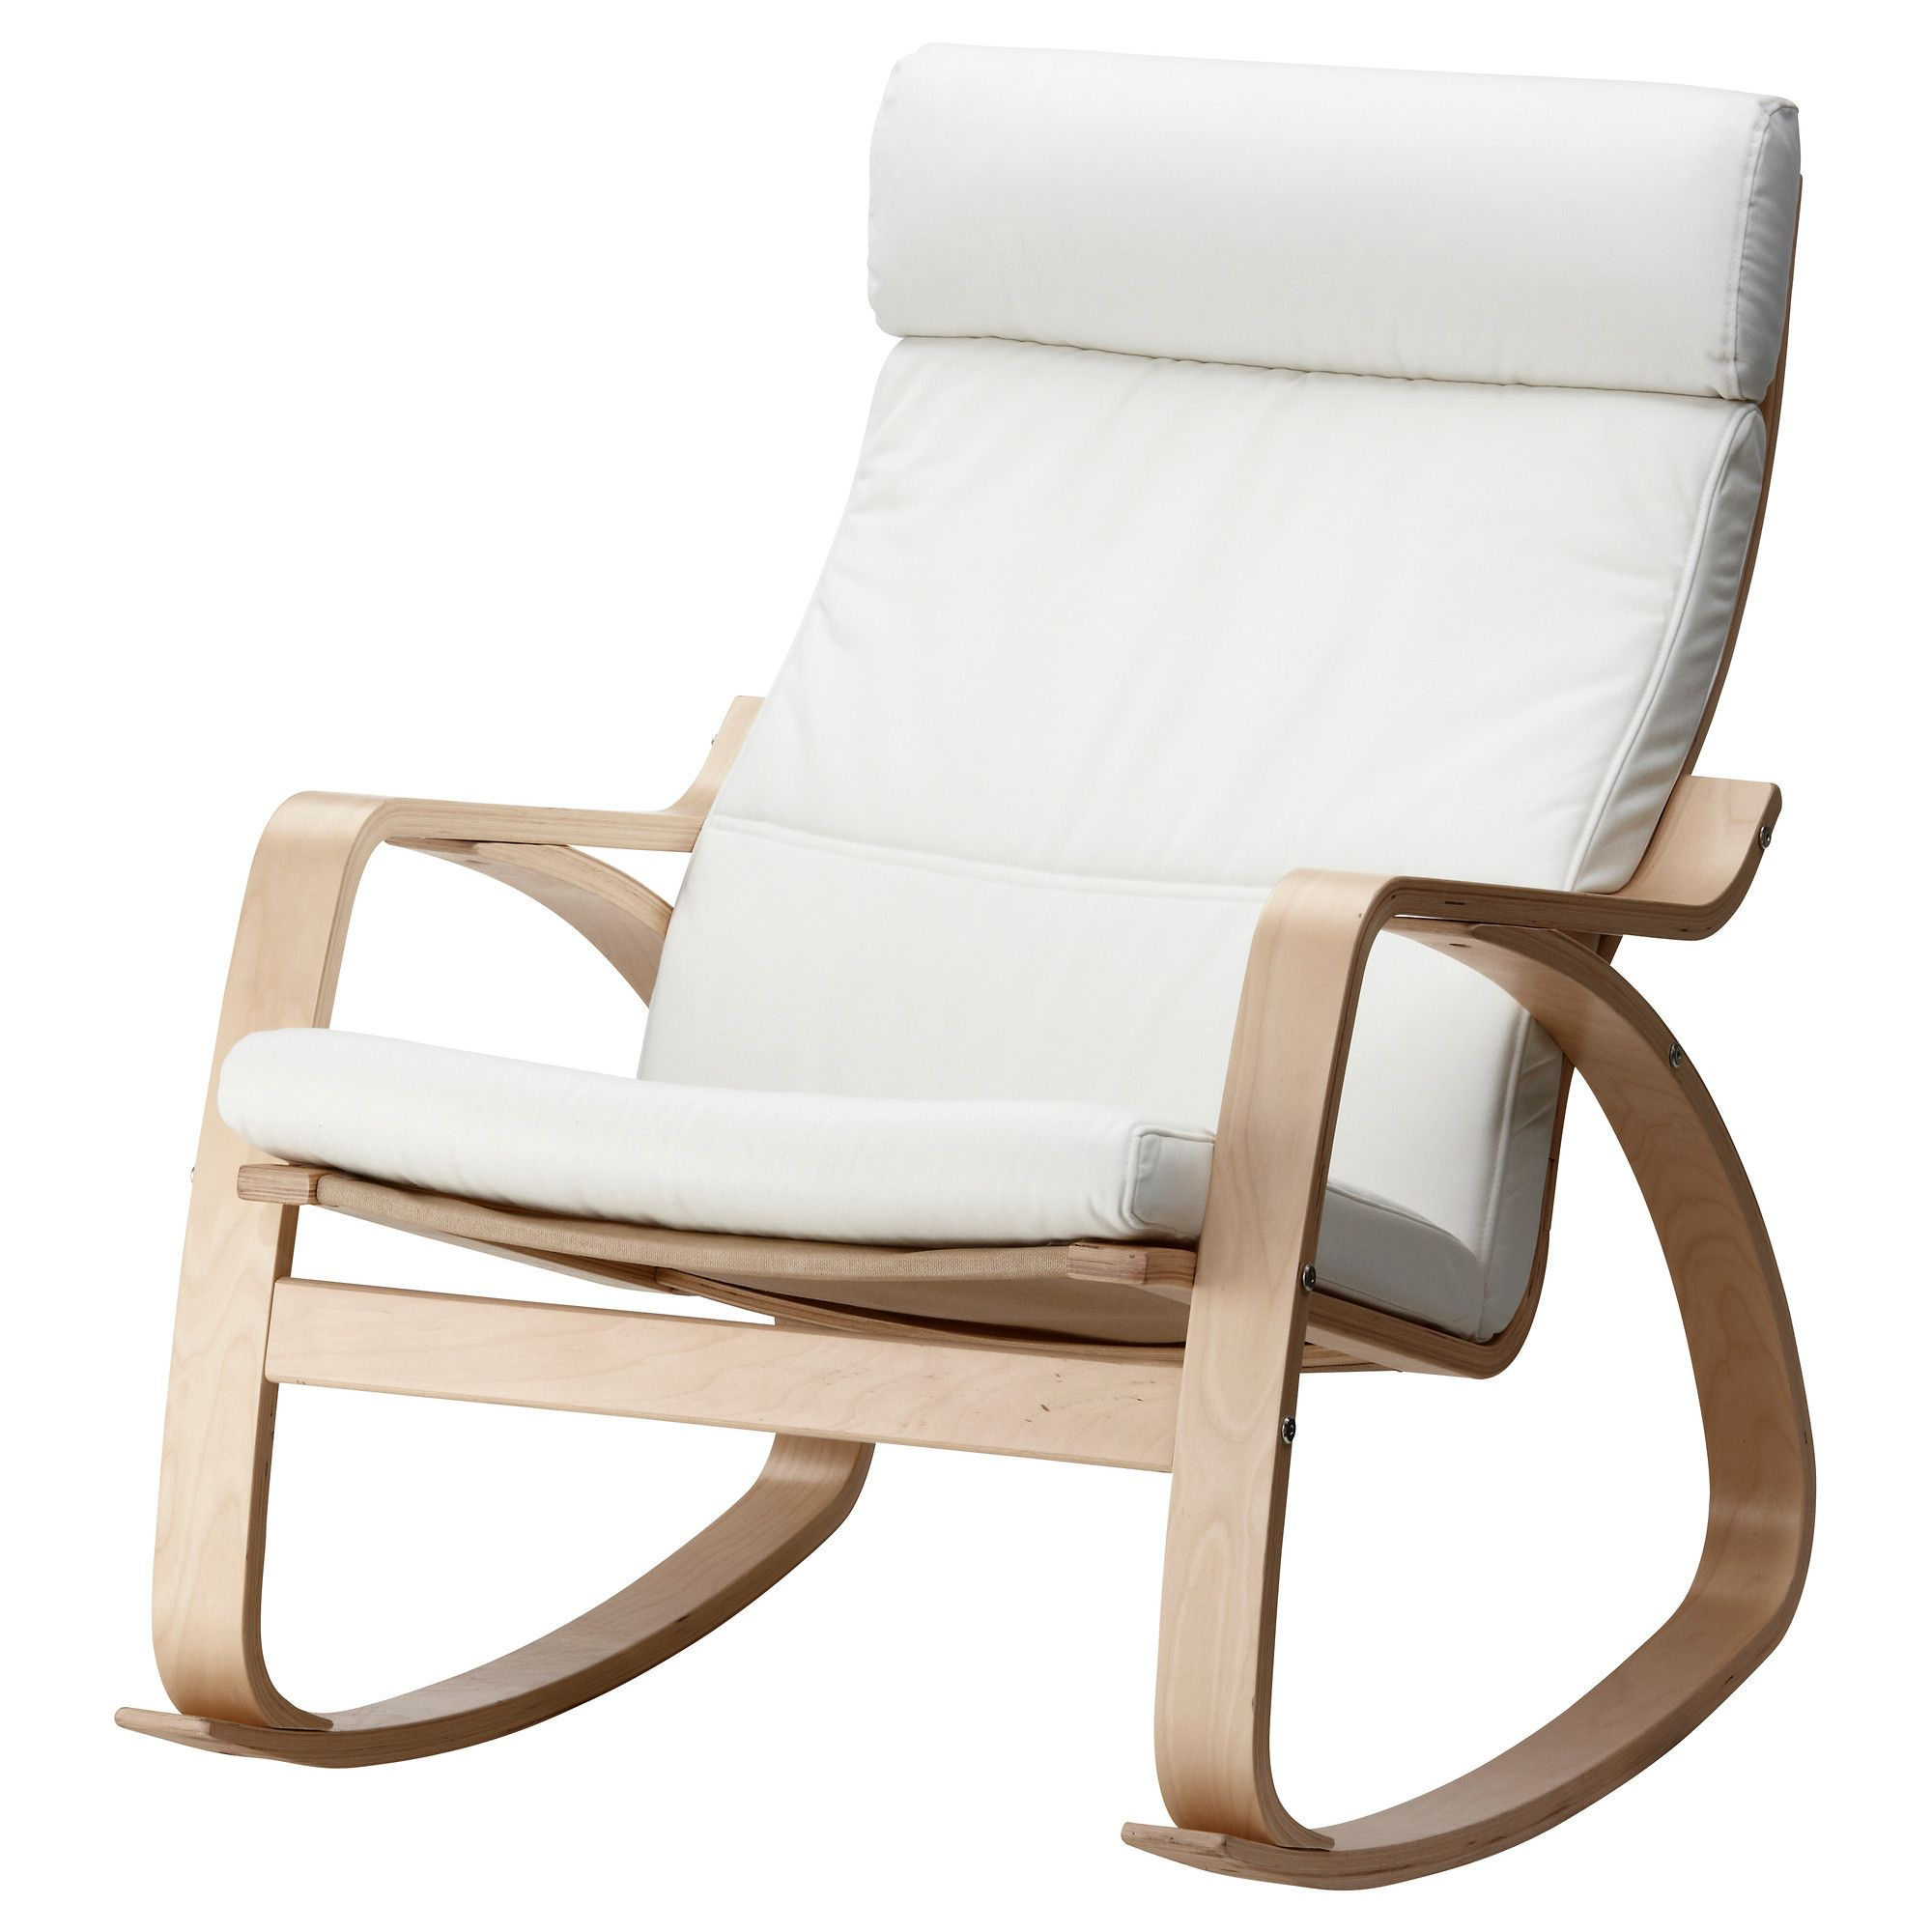 Ikea Rocking Chairs How To Make A Wooden Chair Stop Squeaking Nursery Cozy It Up By Diy Arm Rests With Contrast Fabric